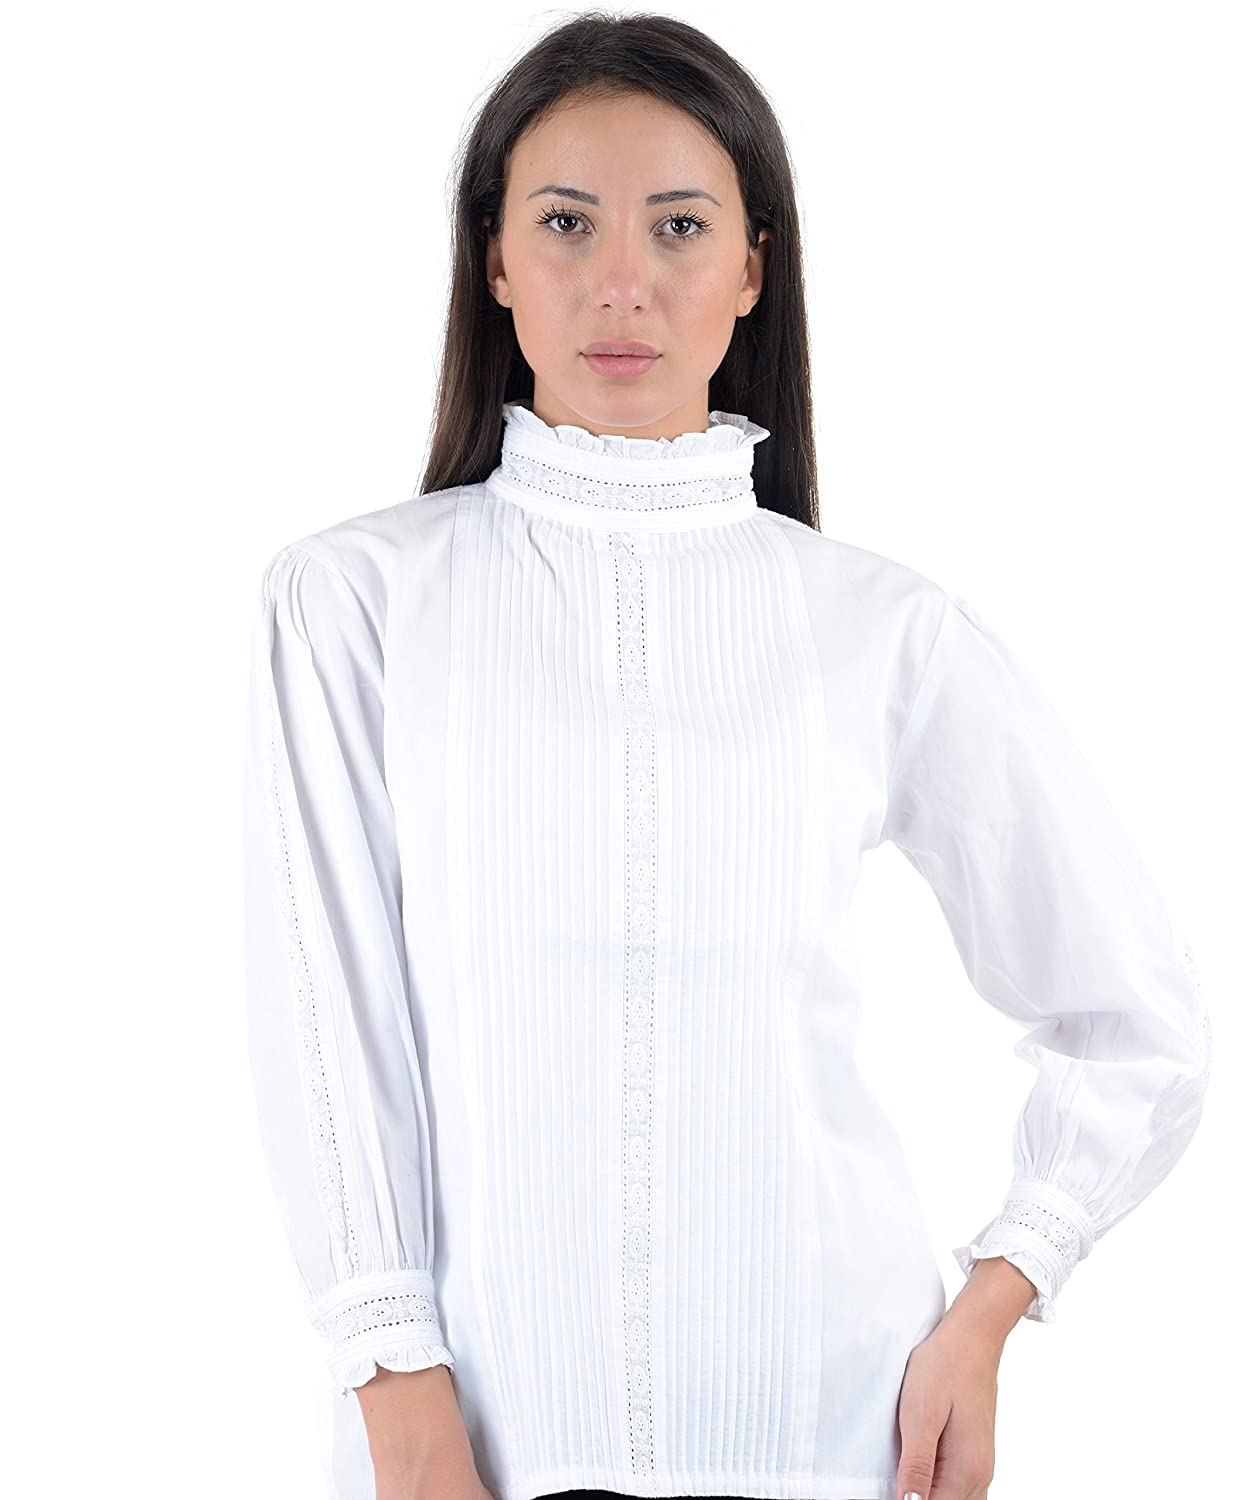 Victorian Blouses, Tops, Shirts, Vests White Cotton Victorian/Edwardian Vintage Reproduction Blouse A67-WT. Sizes US 4 To 30 $59.95 AT vintagedancer.com